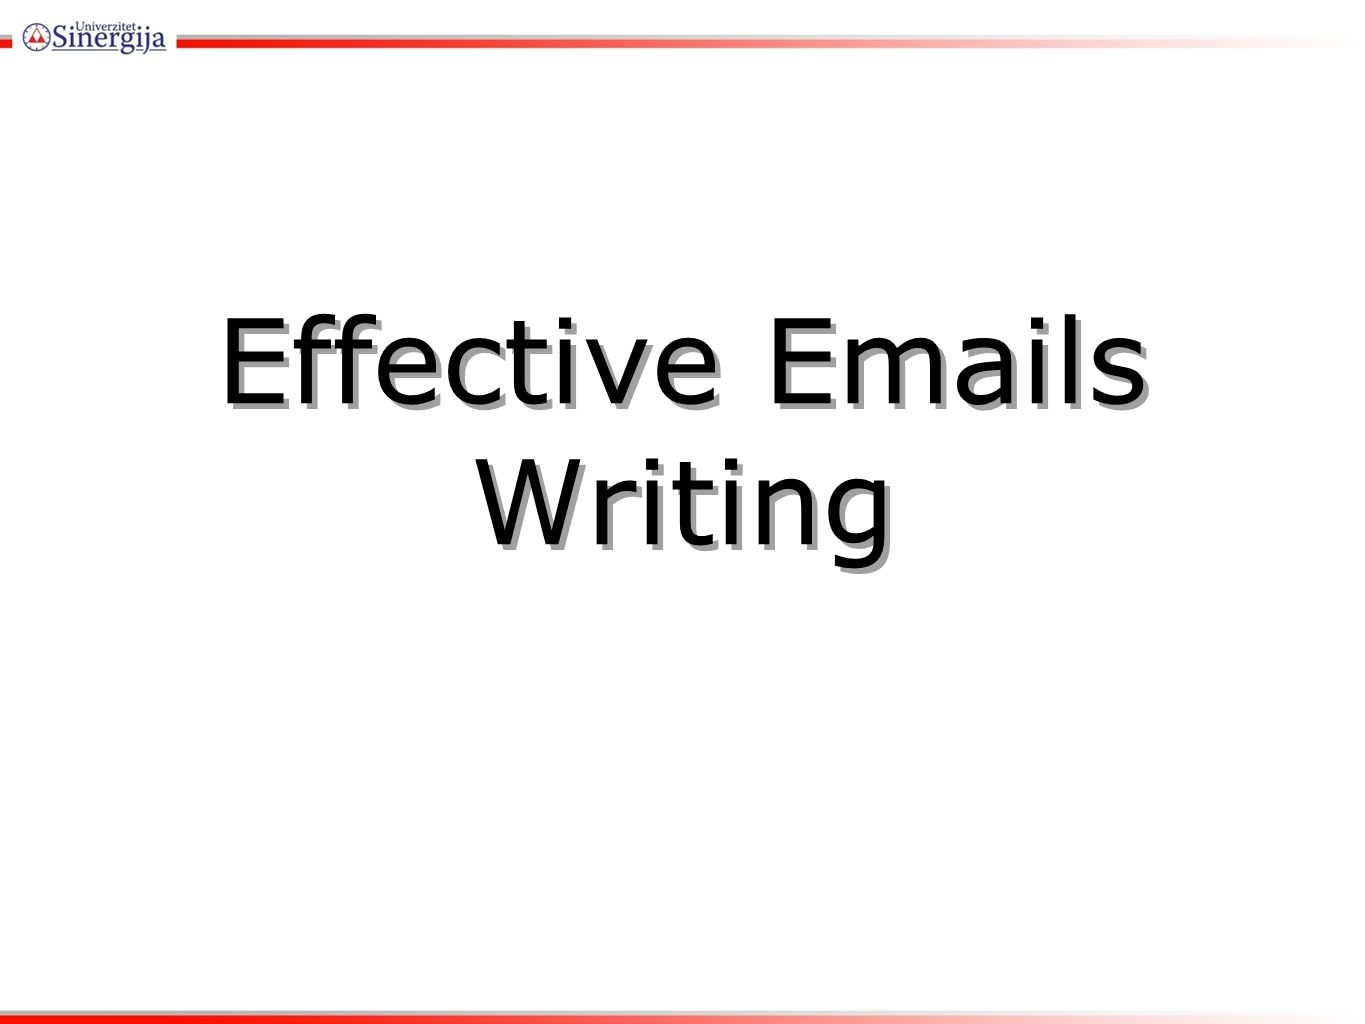 effective emails writing effective emails rmu 3 19 08 presentation on email writing in hd